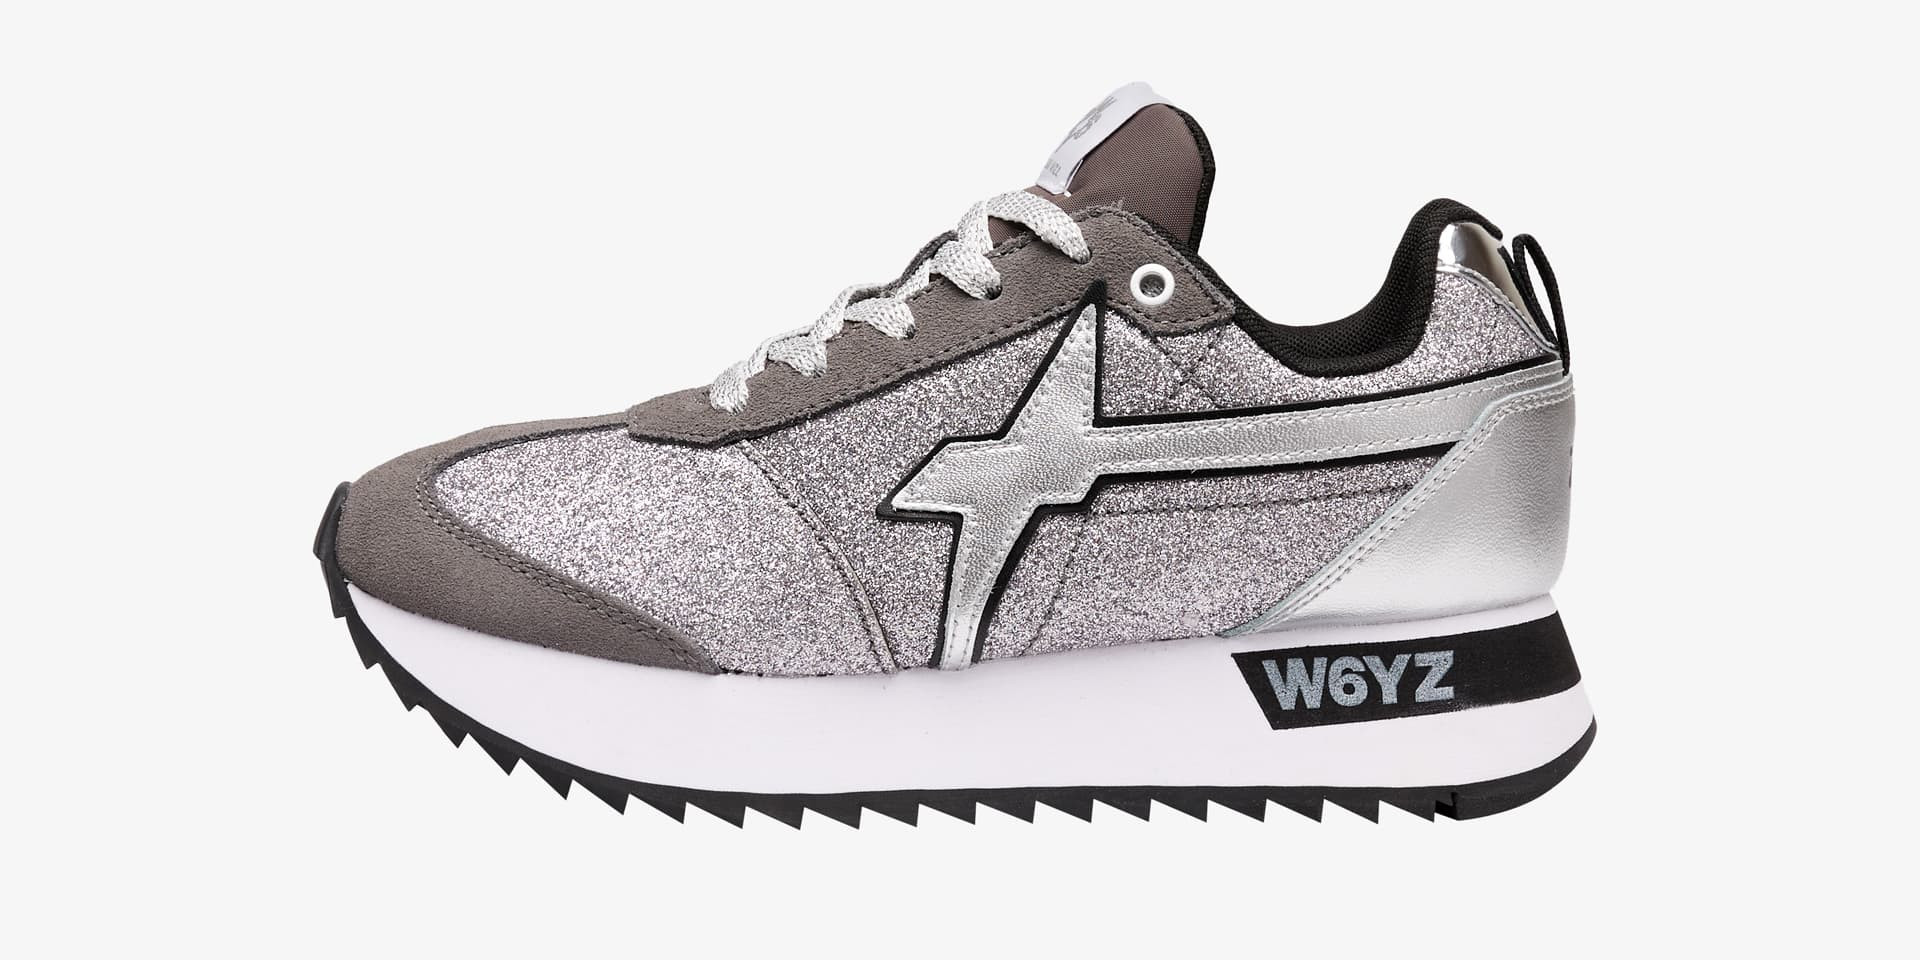 KIS-W. - Suede and glitter sneakers - Silver